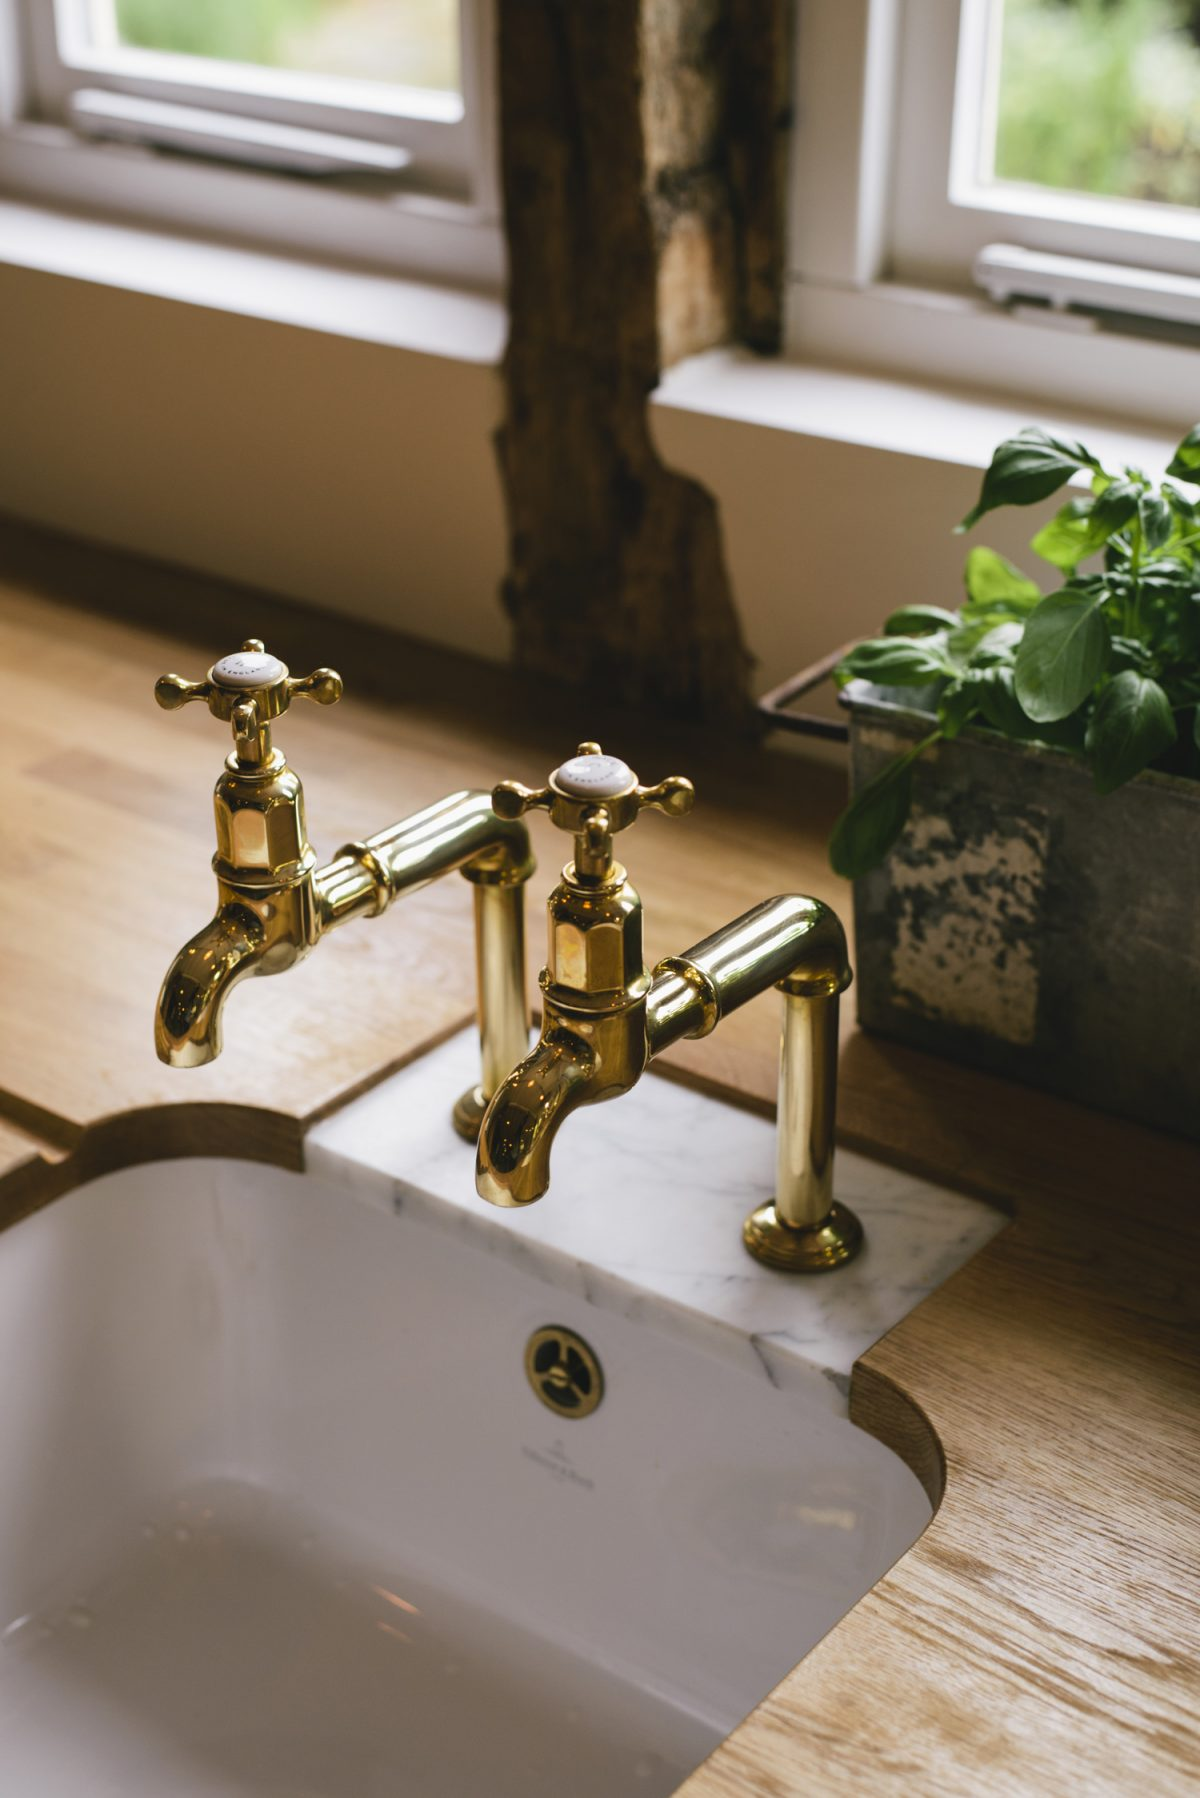 A pair of Aged Brass Mayan Taps set into a Carrara marble insert to prevent water damage.